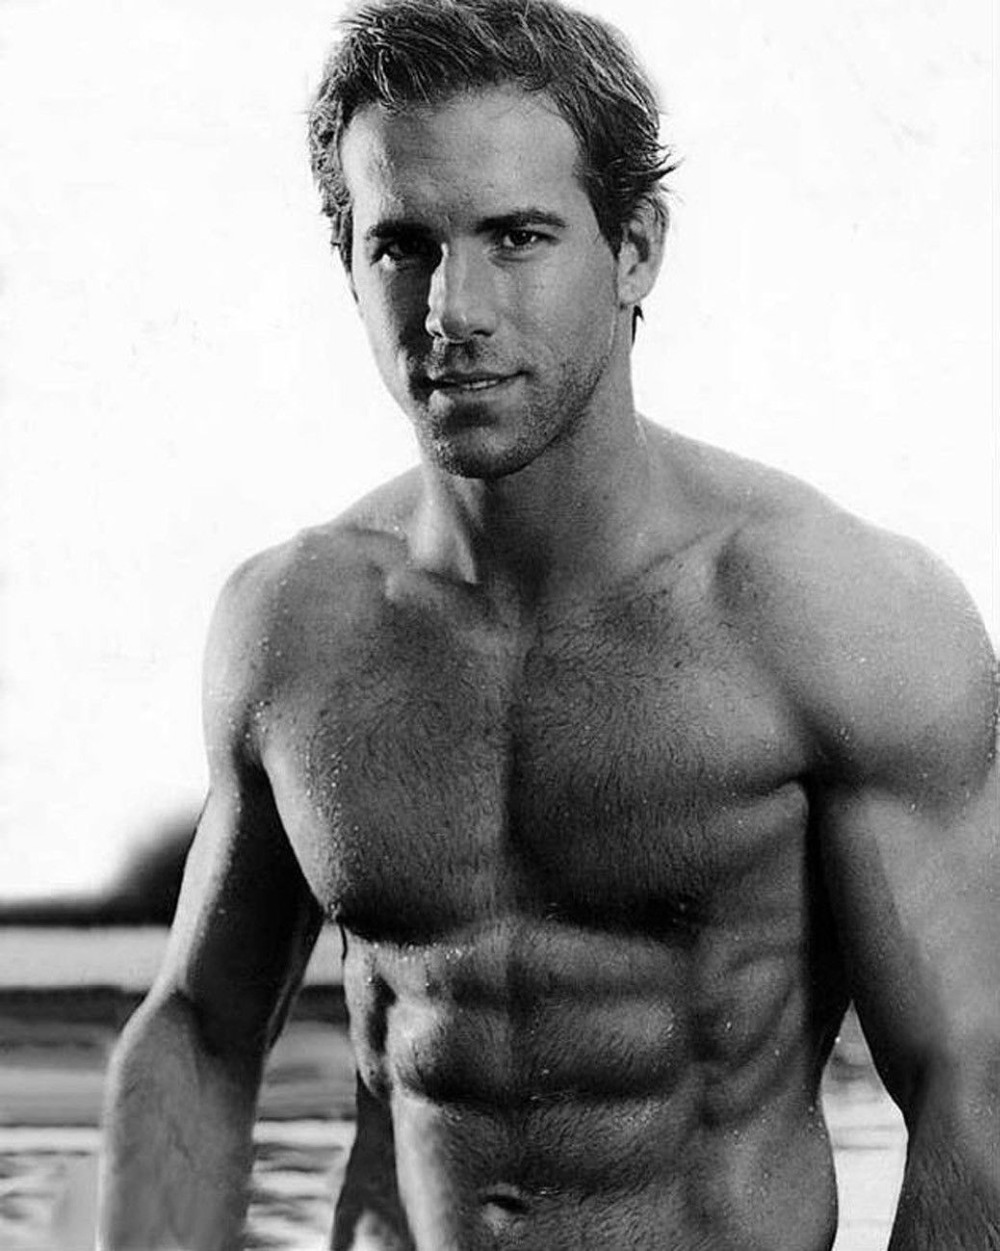 Home Decor Ryan Reynolds Actor Star-Silk Art Poster Wall Sicker Decoration Gift image